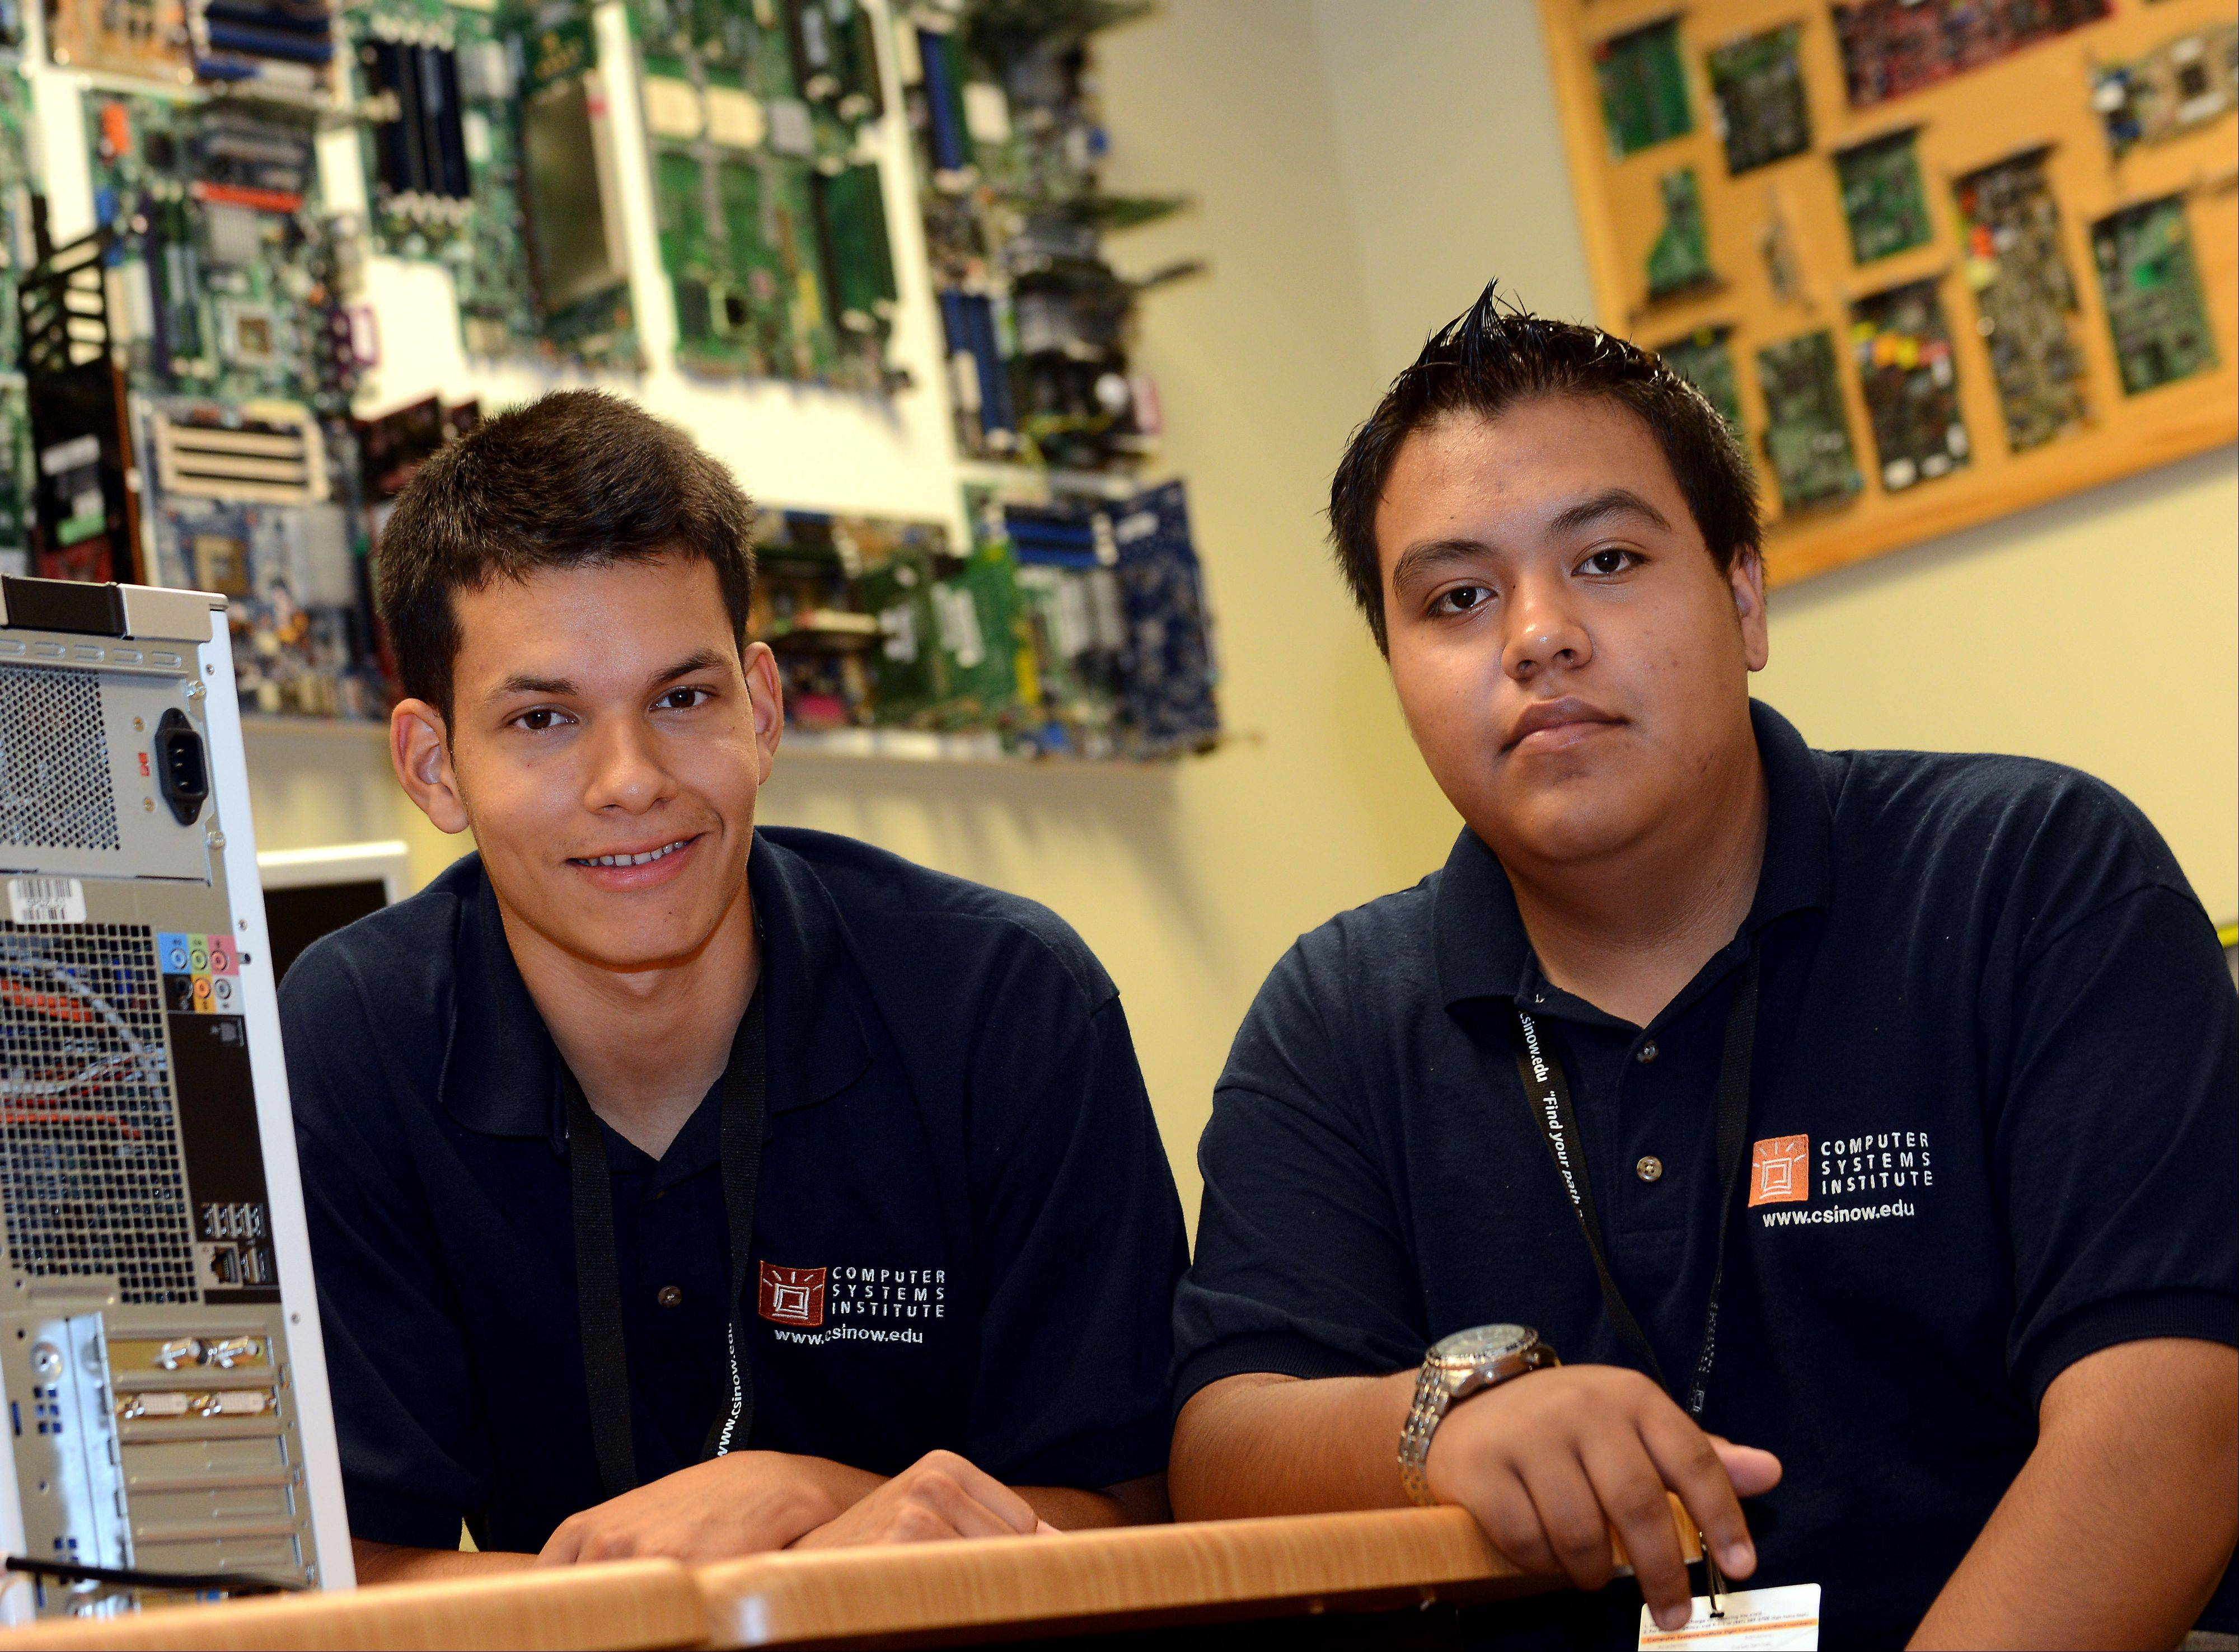 Eduardo Chirinos, left, of Lake in the Hills, and Marco Linares of Elgin, received SMART scholarships from Elgin�s Computer Systems Institute to attend its eight-month computer networking training program. The coursework will prepare them to work in the computer and IT industry.